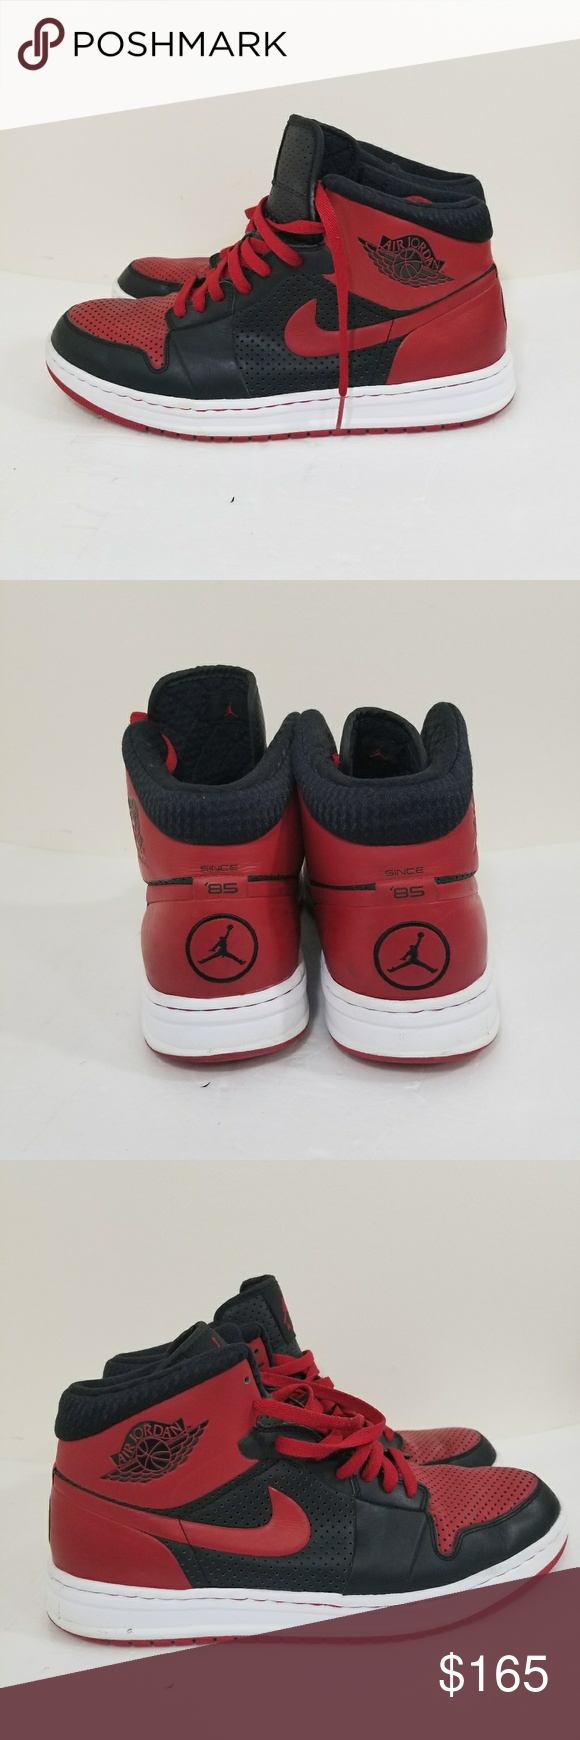 9bf36fef459 NIKE AIR JORDAN Alpha I Black Varsity red 11 NIKE AIR JORDAN Alpha I Black  Varsity